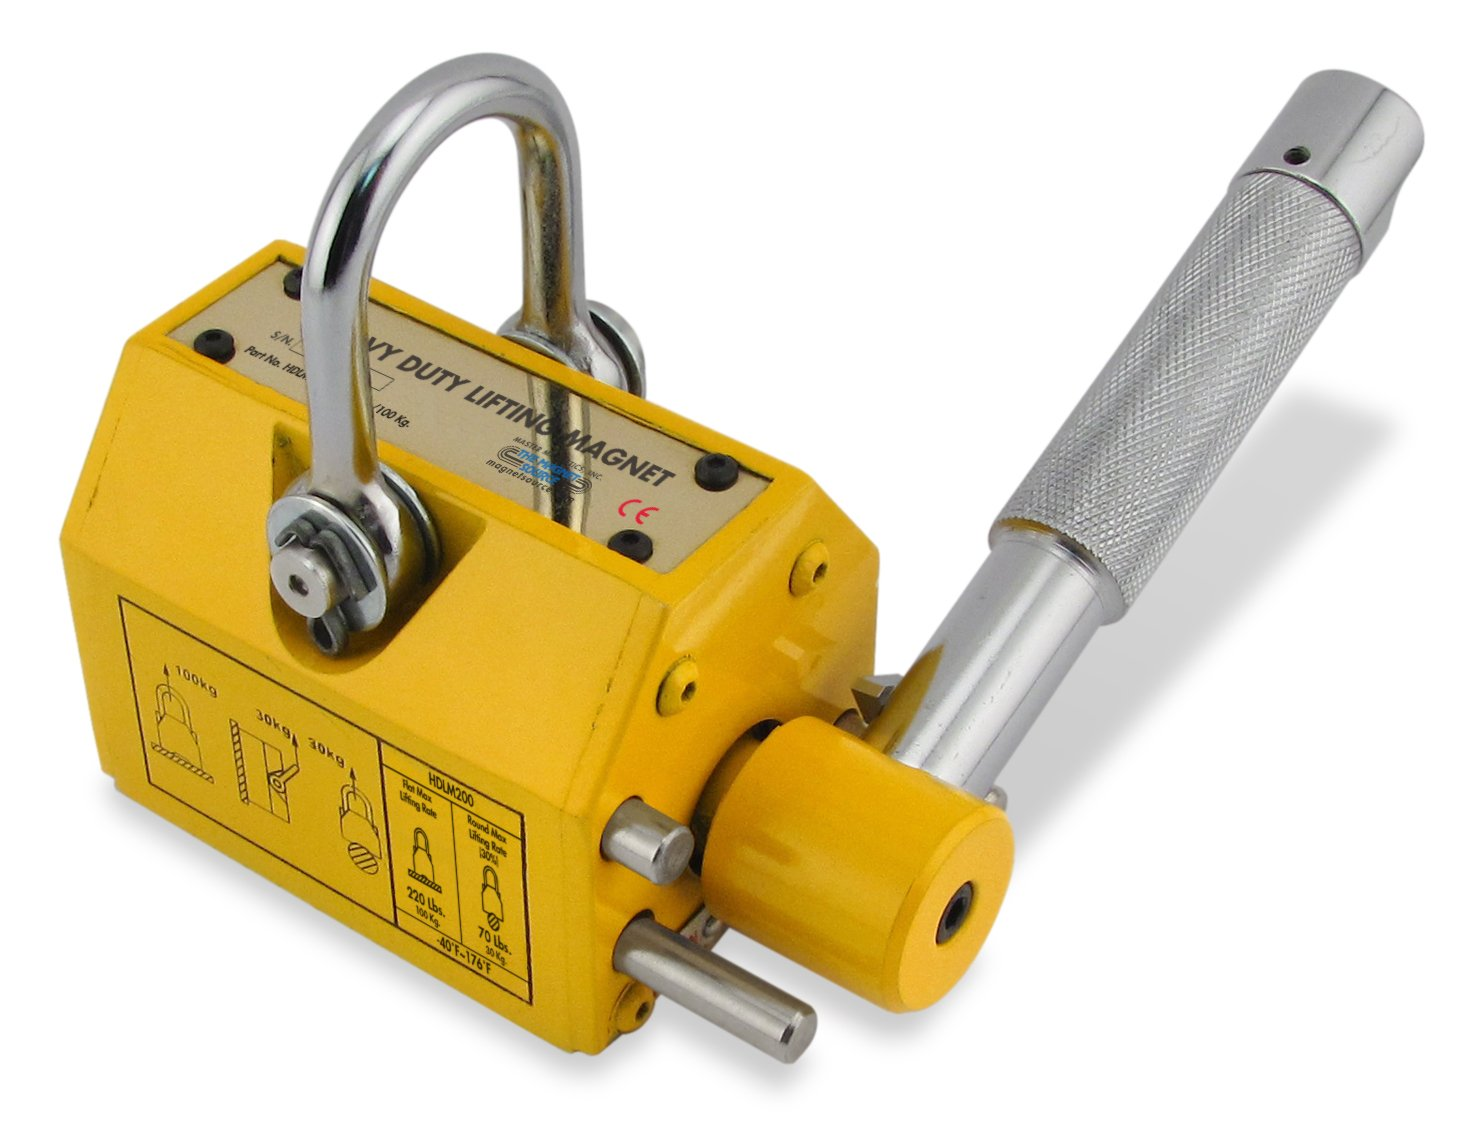 Master Magnetics HDLM220 Industrial Lifting Magnet with Release , 220 Pound/100 KG Capacity, Magnet's Base is 3.625'' Length, 2.50'' Width, 4.50'' Overall Height (Box of X) .